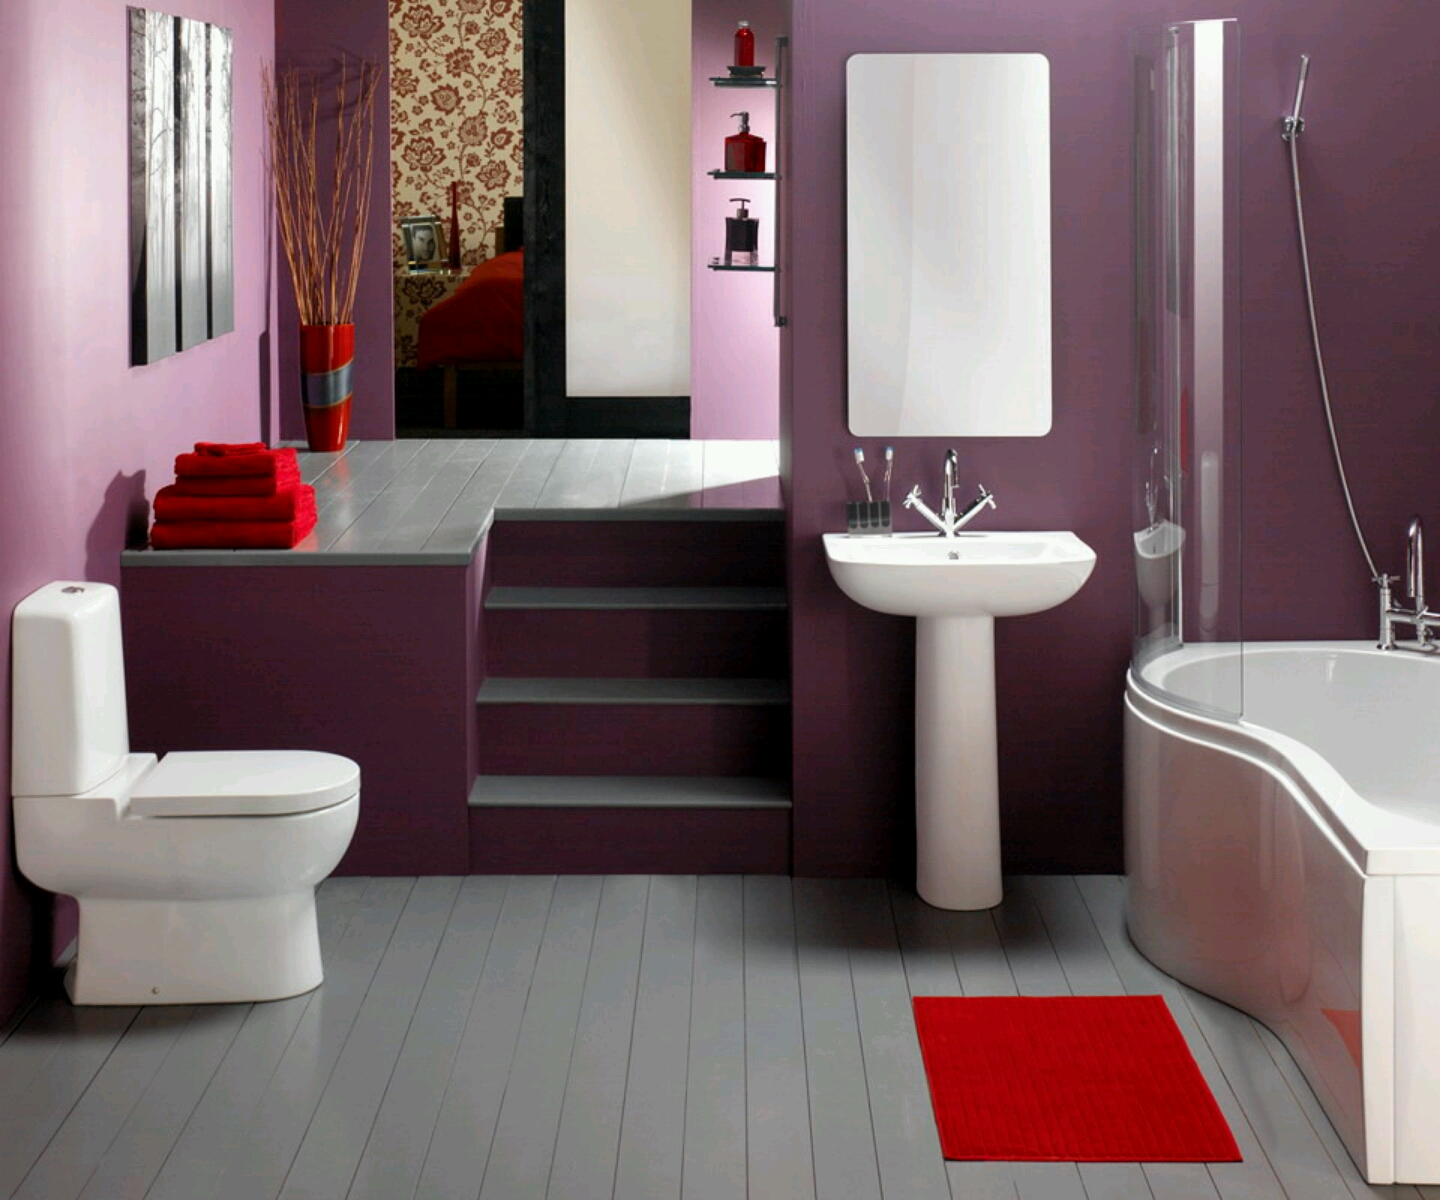 New home designs latest luxury modern bathrooms designs for House bathroom